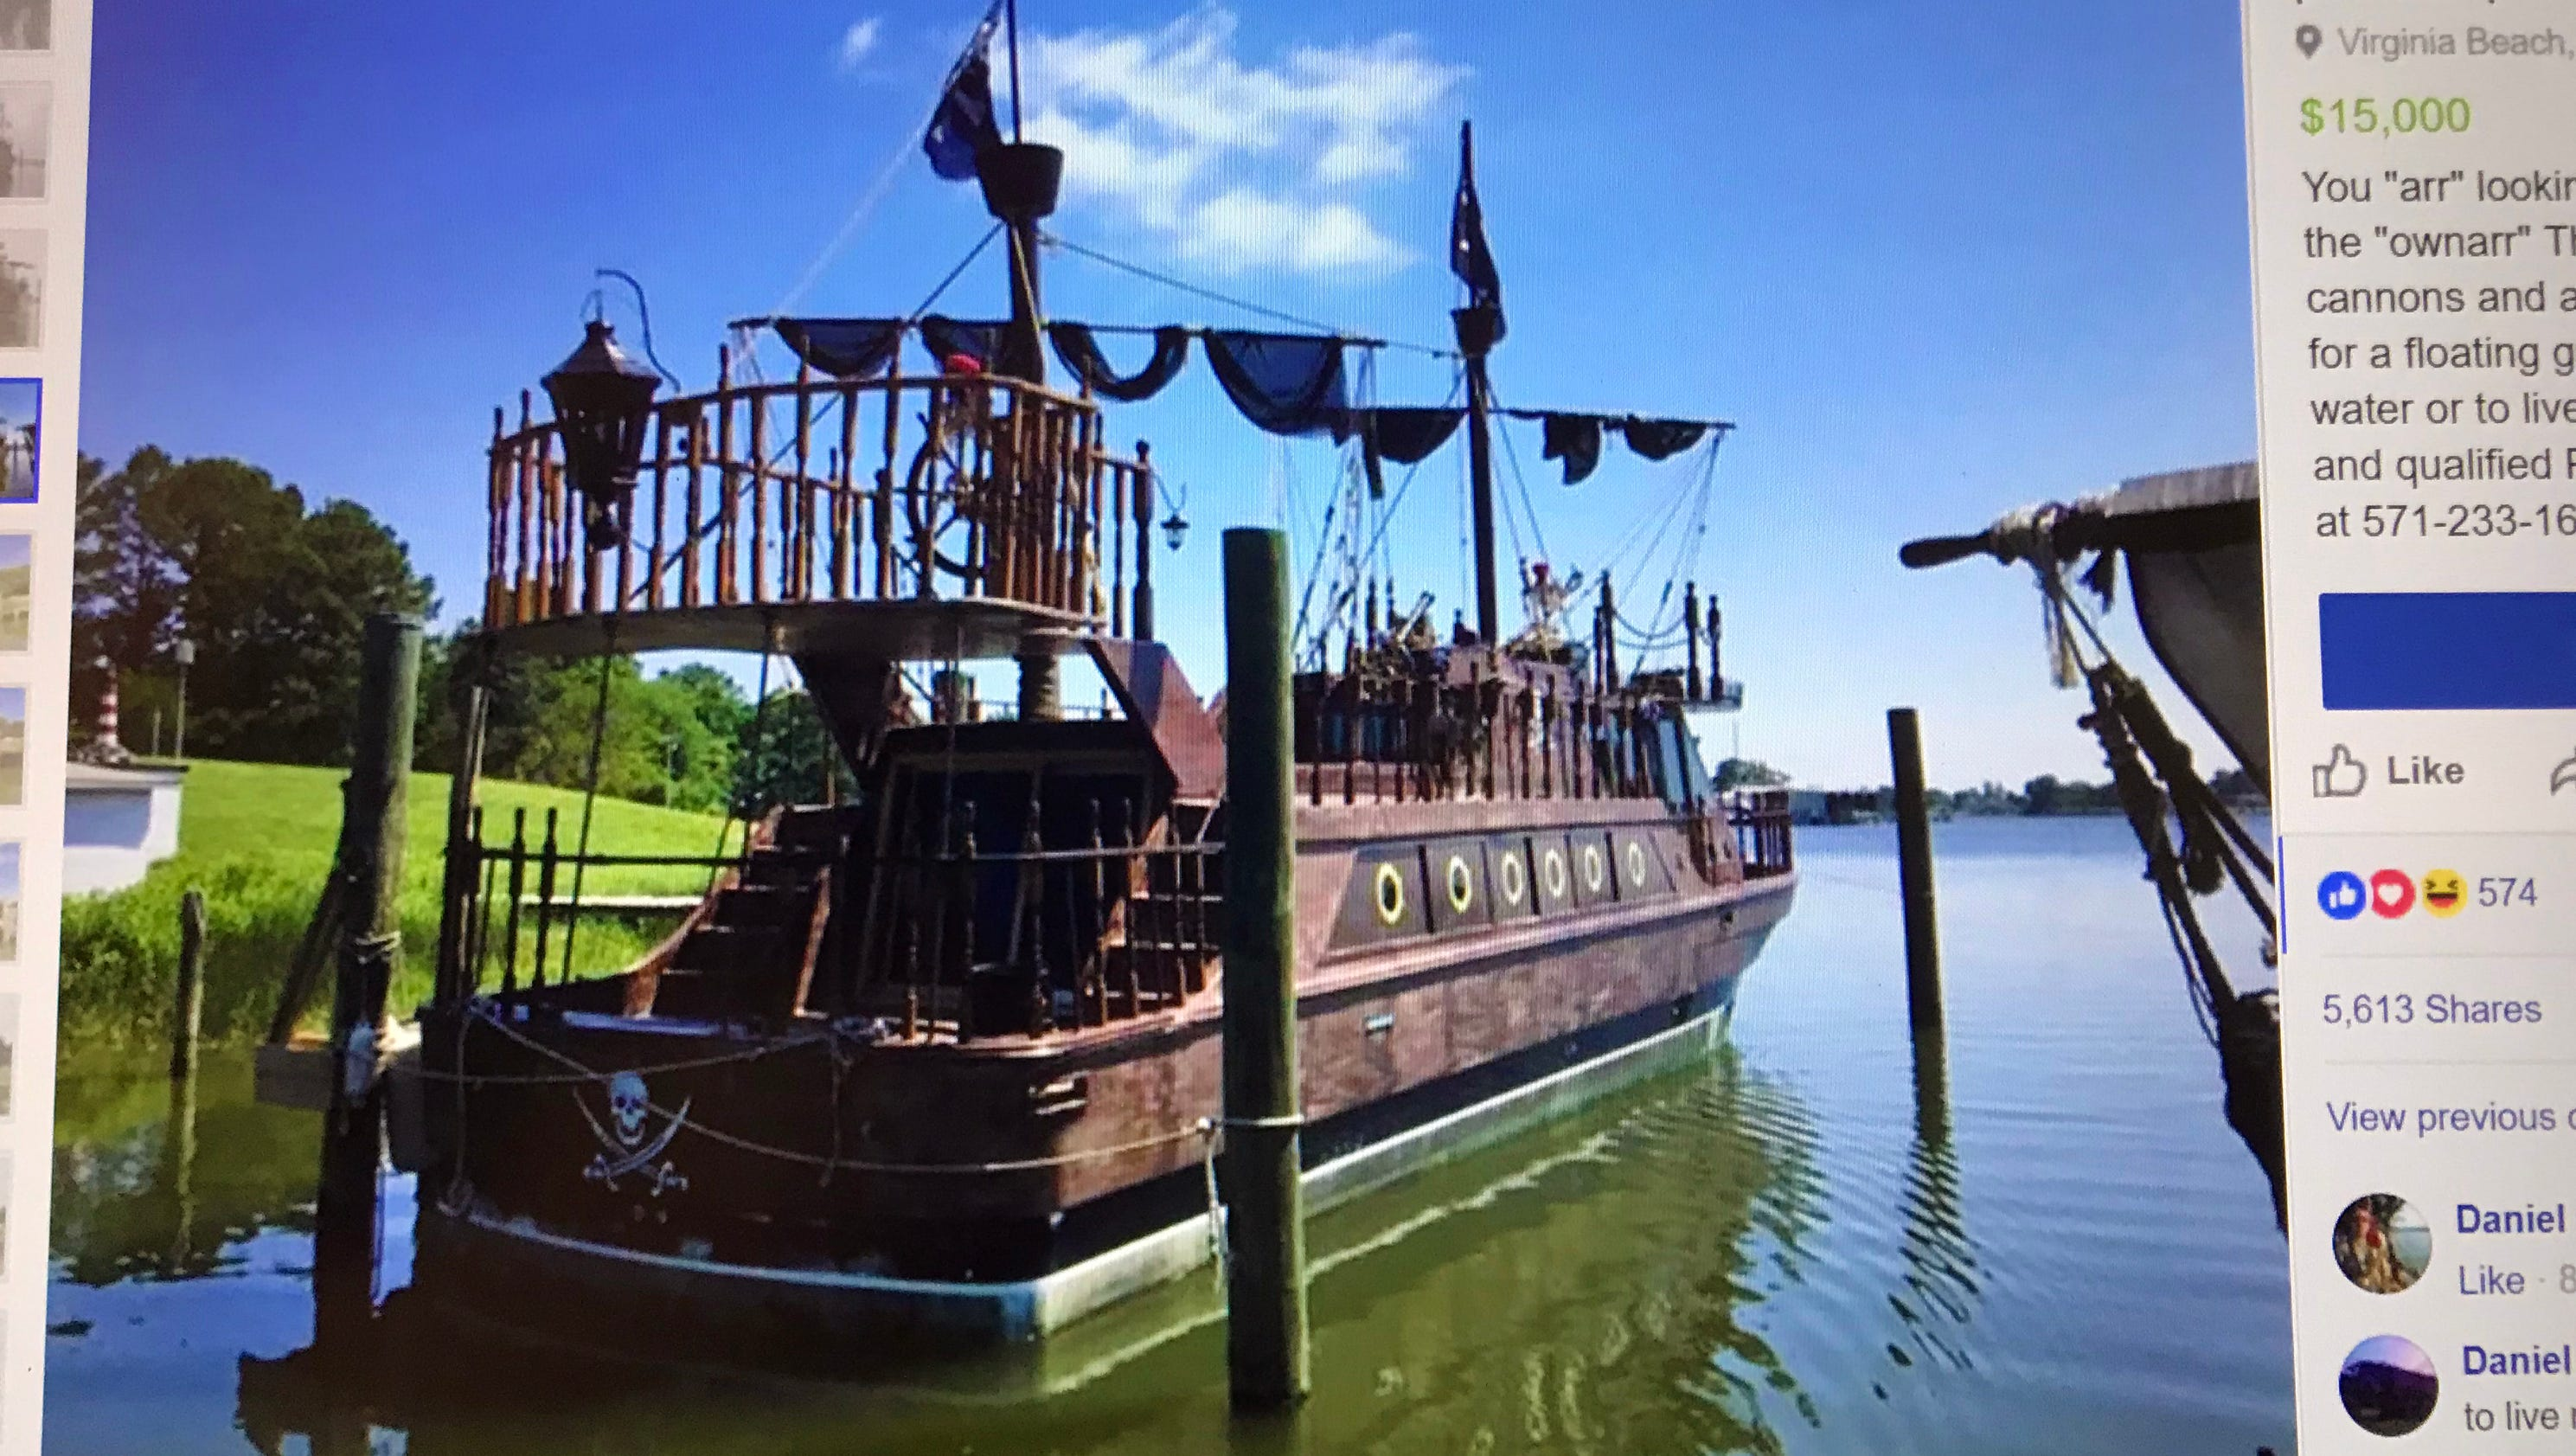 39 pirate 39 ship with literally a skeleton crew for sale on for Sips for sale